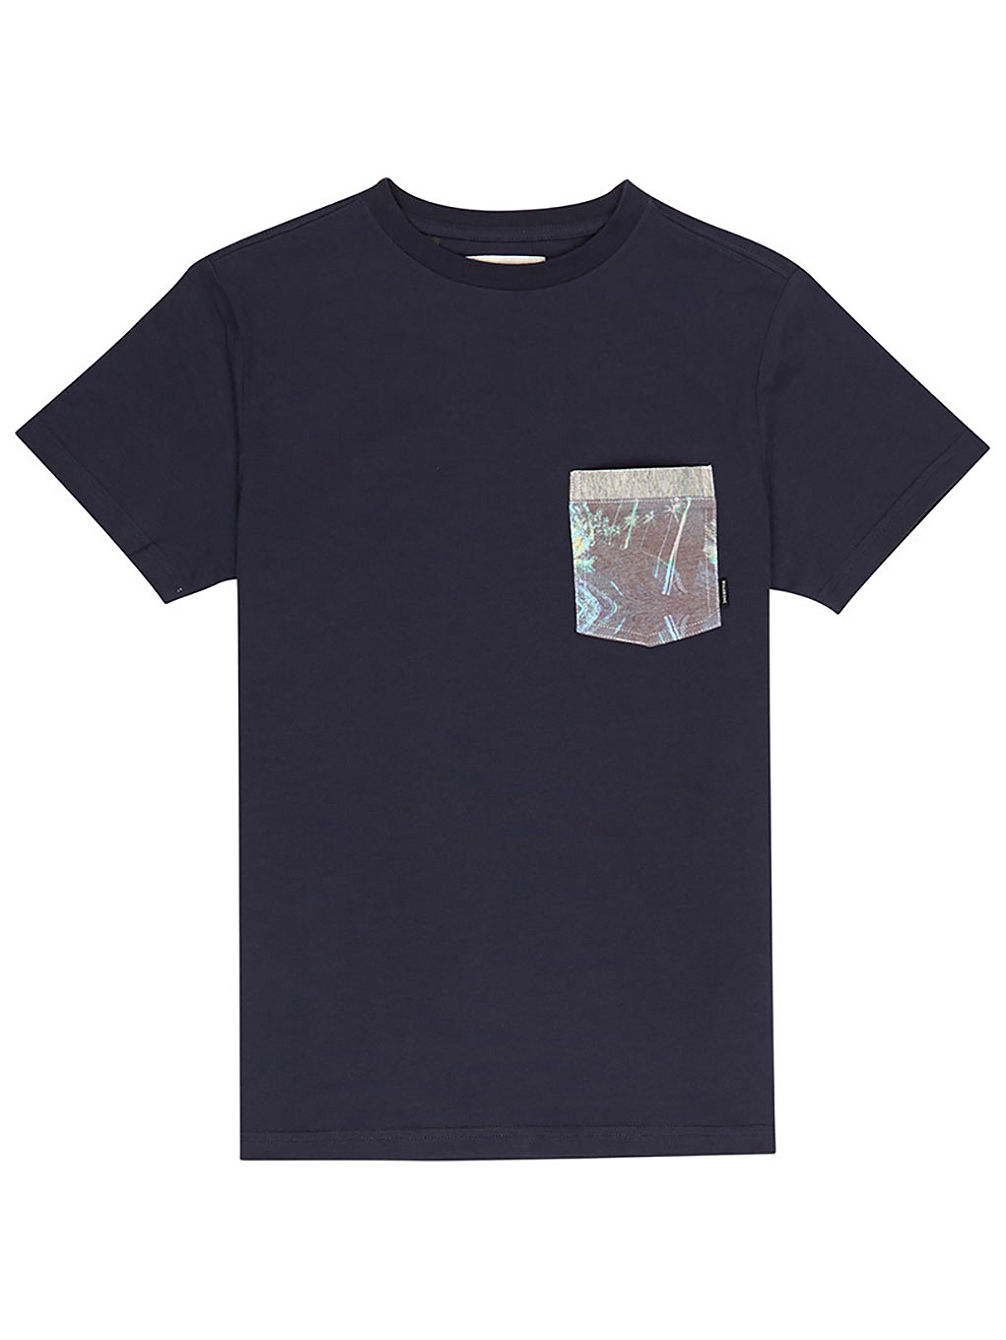 All Day Printed Crew T-Shirt Boys